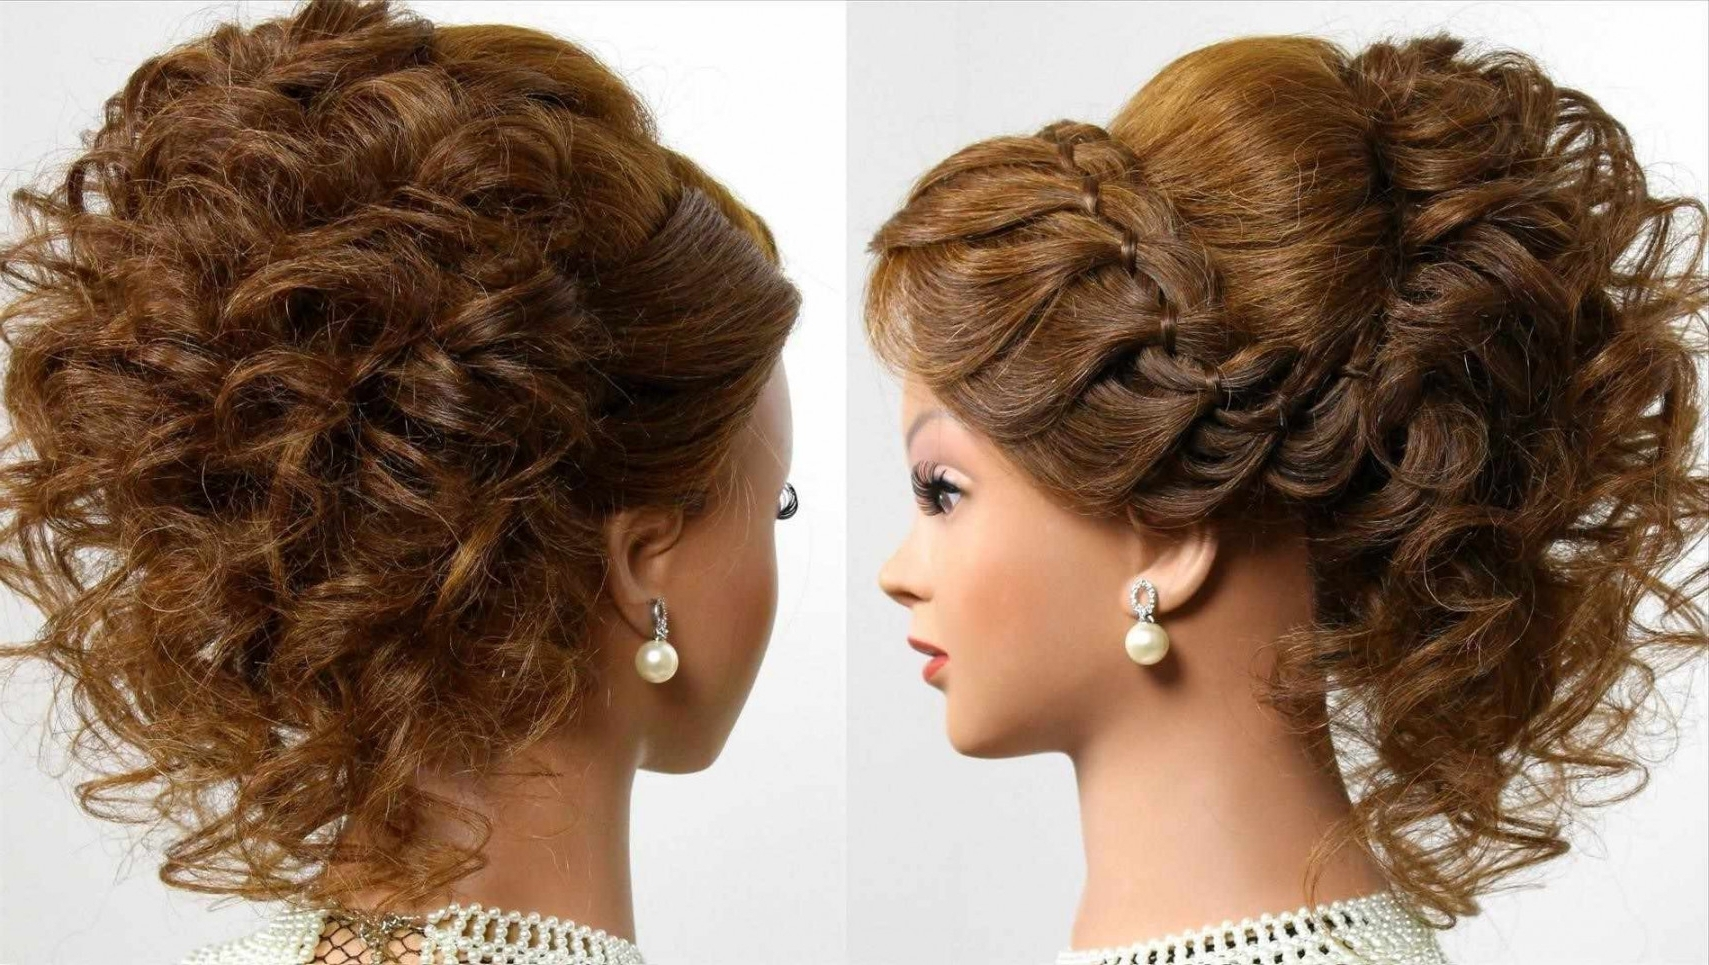 Bridal Updo Hairstyle For Long Medium Hair Soft Curled Or Wedding With Regard To Updo Hairstyles With Bangs For Medium Length Hair (View 4 of 15)